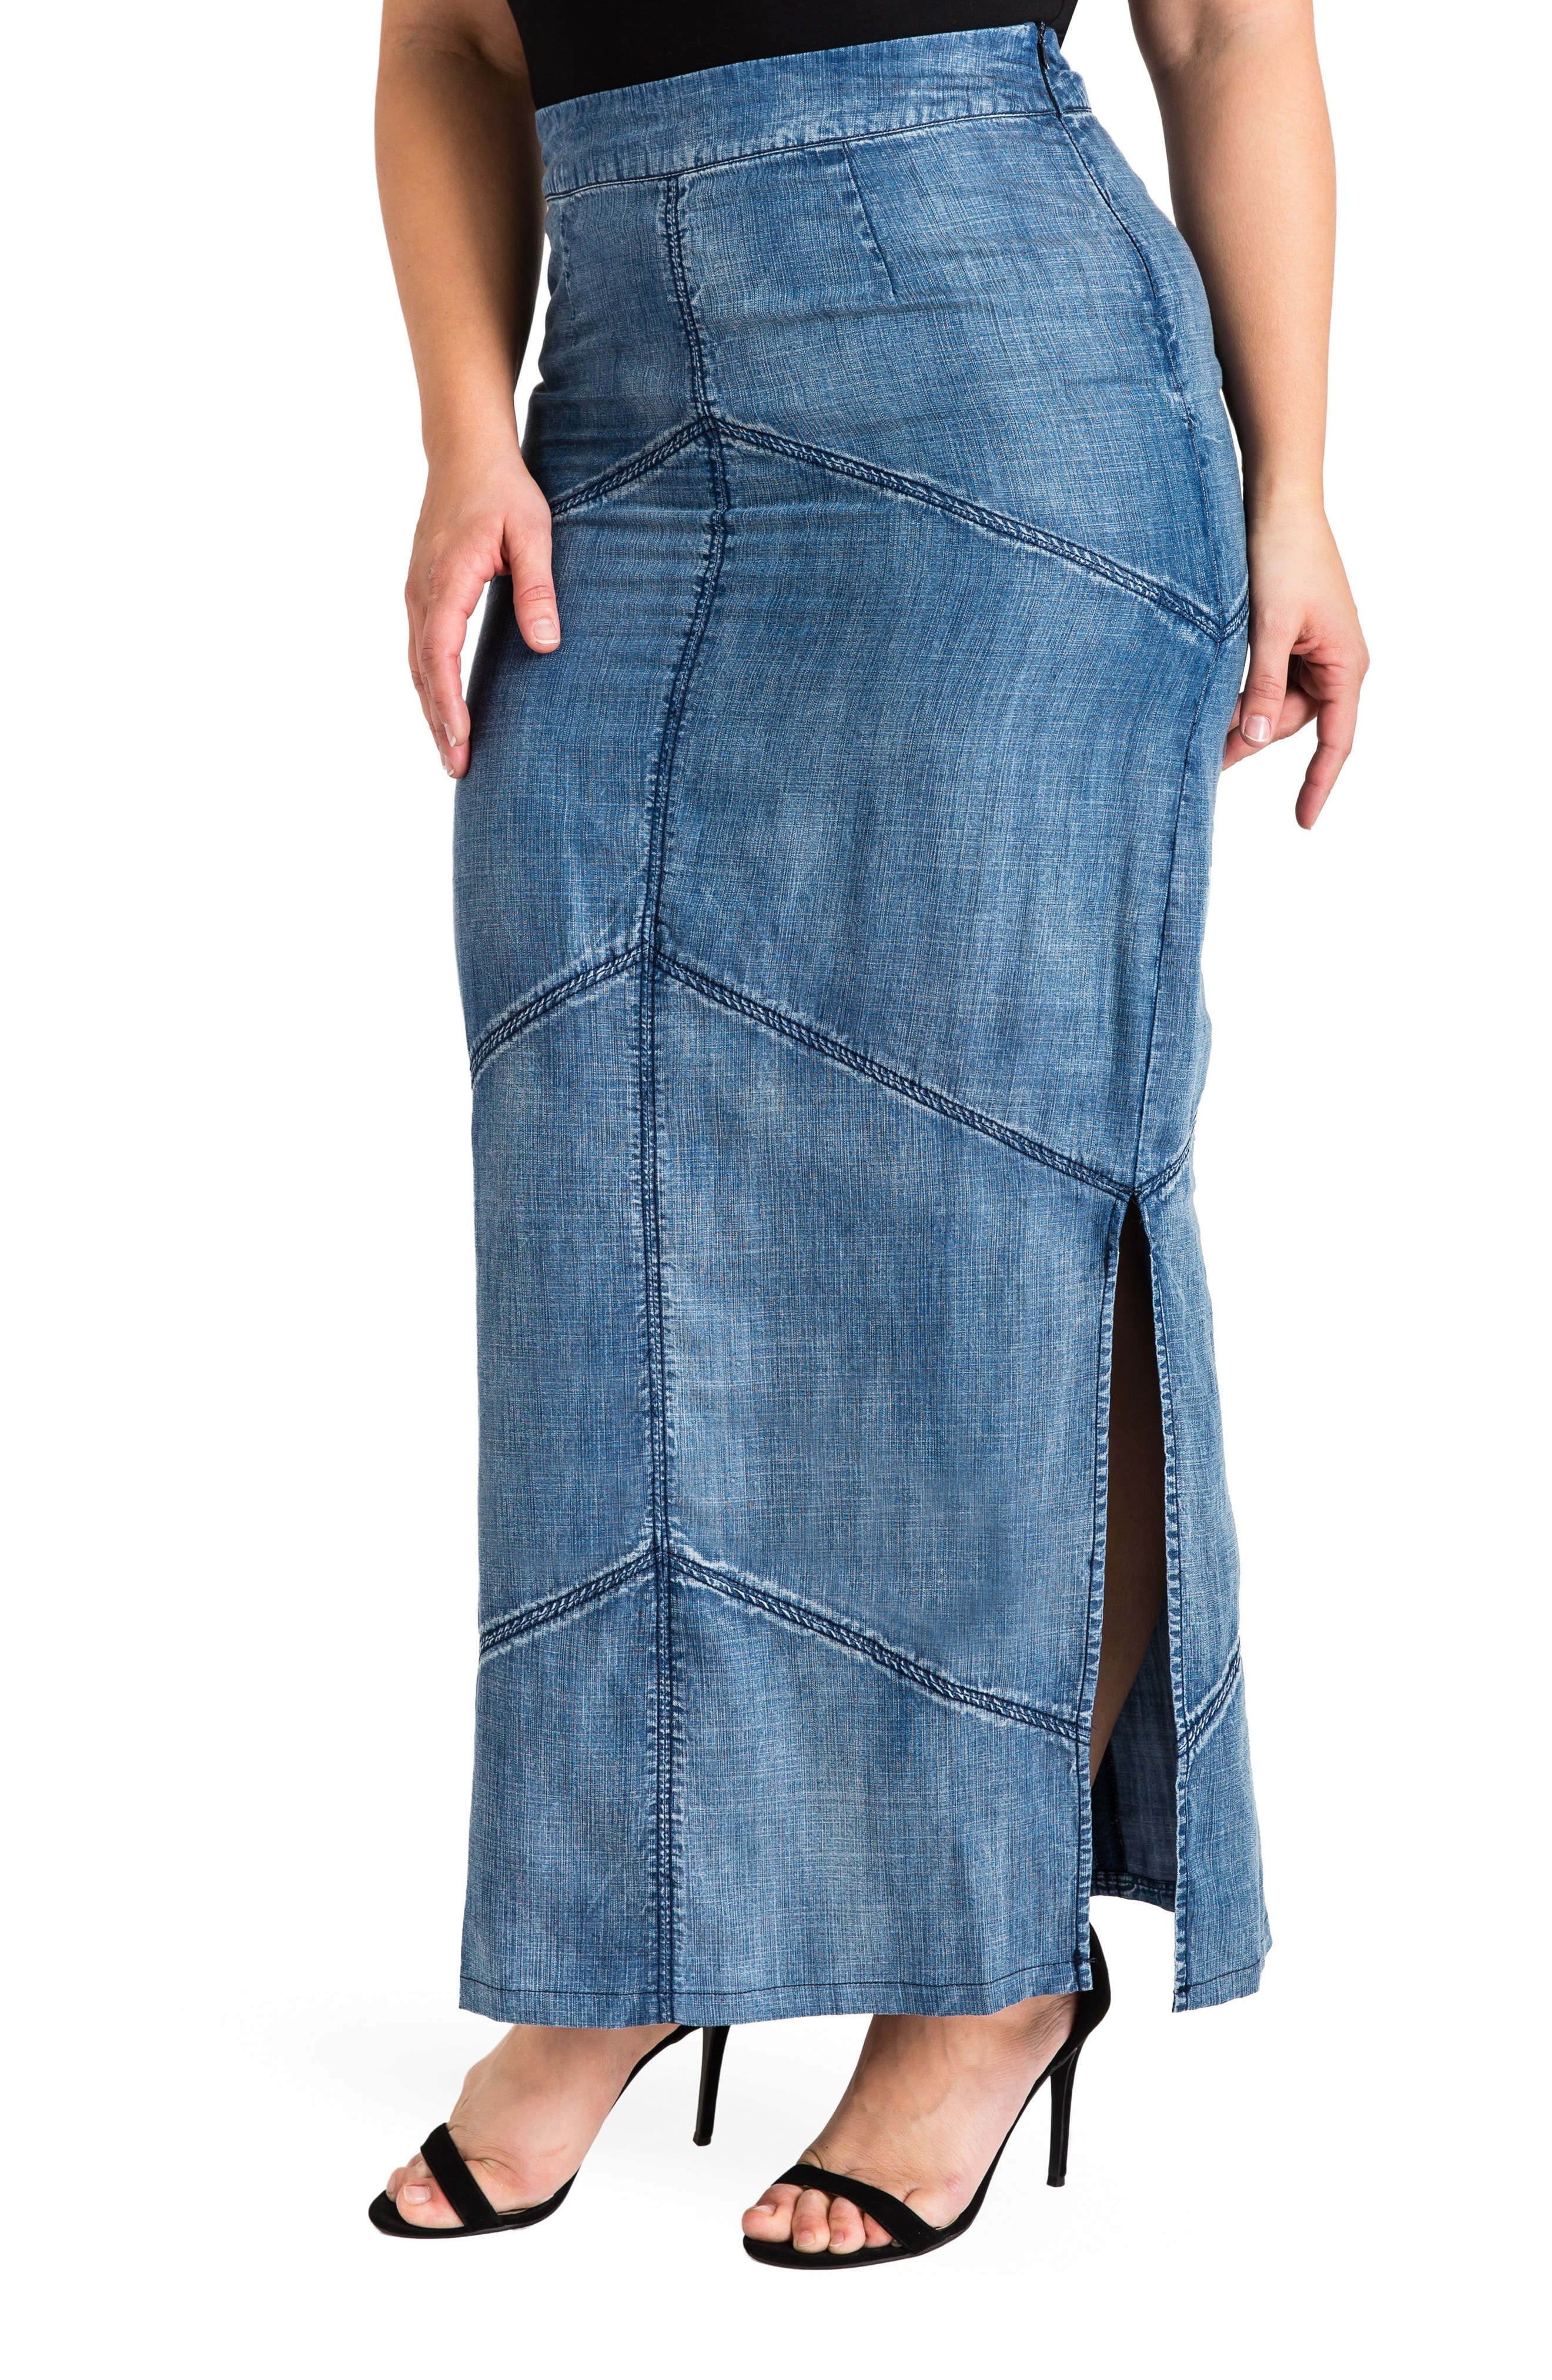 denim pencil skirts | Nordstrom